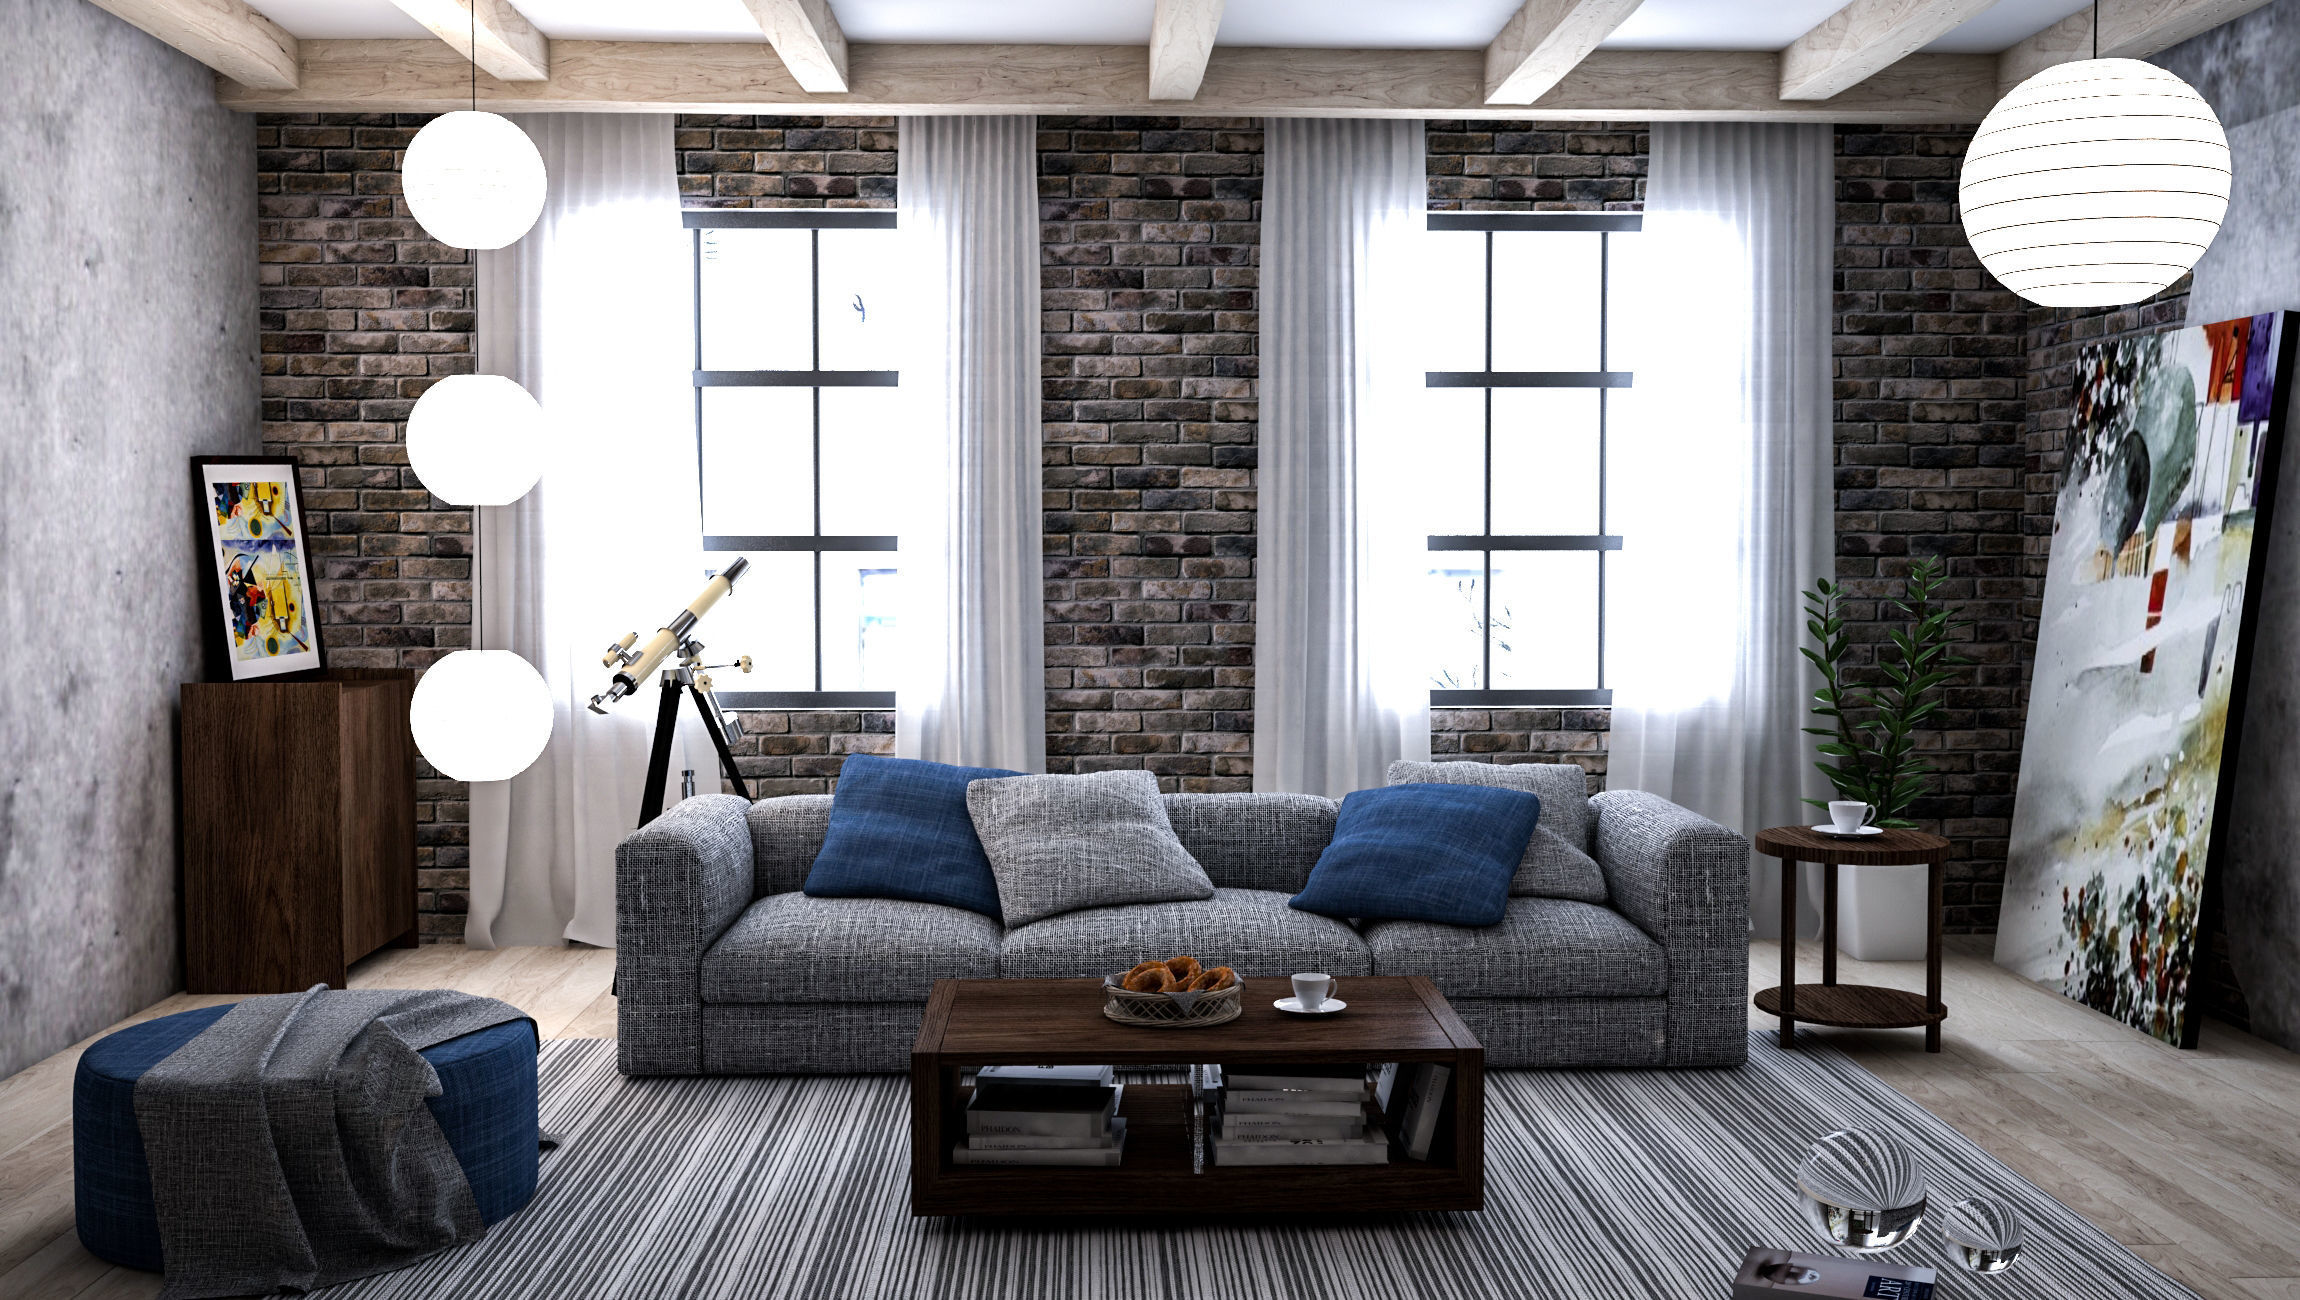 Interior Design 3 3d Model Cgtrader